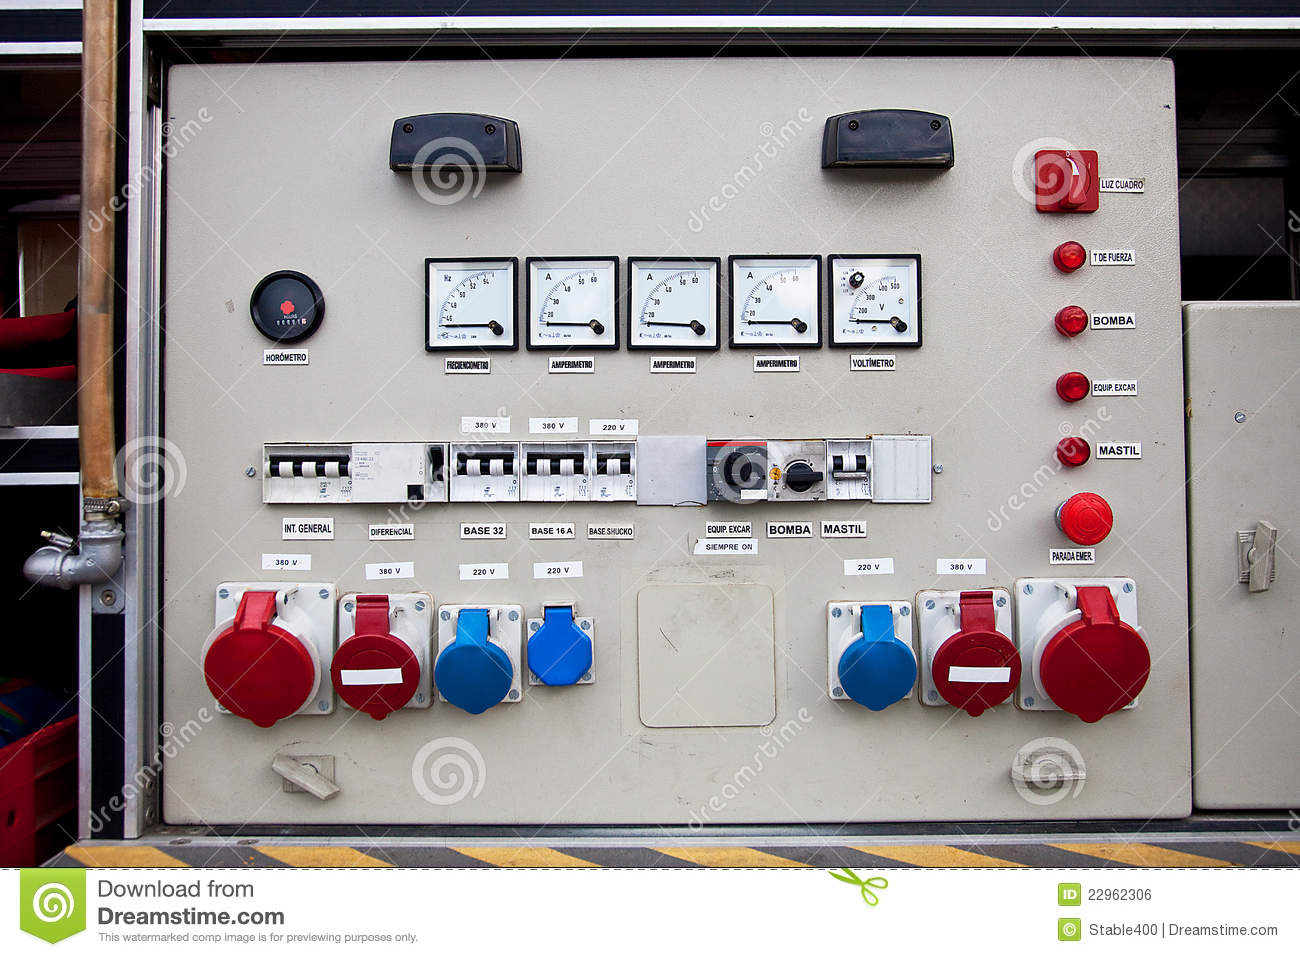 Electrical panel stock photo. Image of panels, switches - 22962306